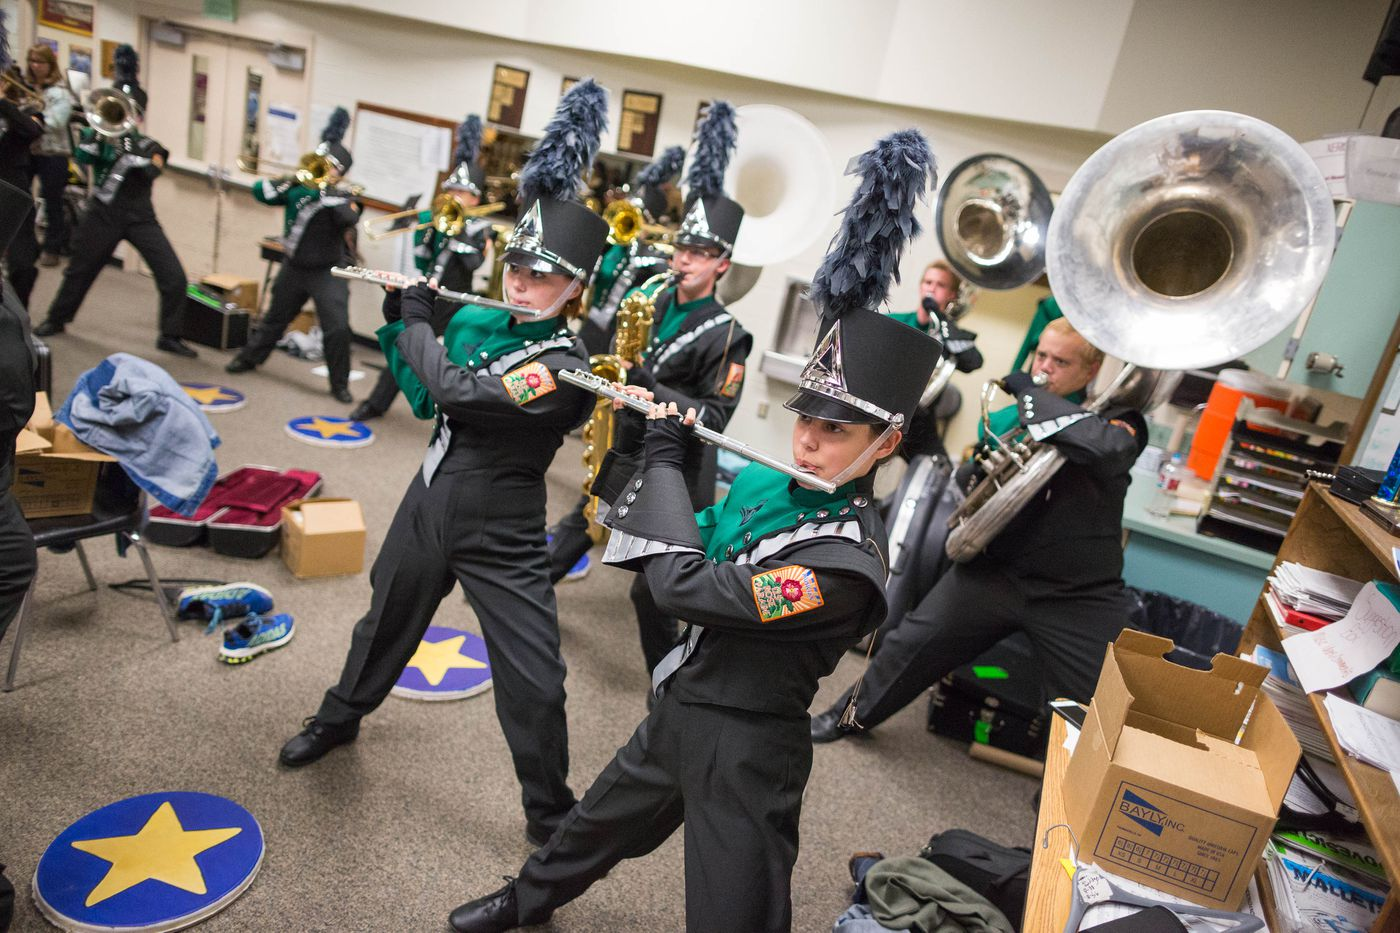 The Colony High School marching band warms up before a performance on Thursday, September 24, 2015. Their group is the only high school marching band in Alaska.